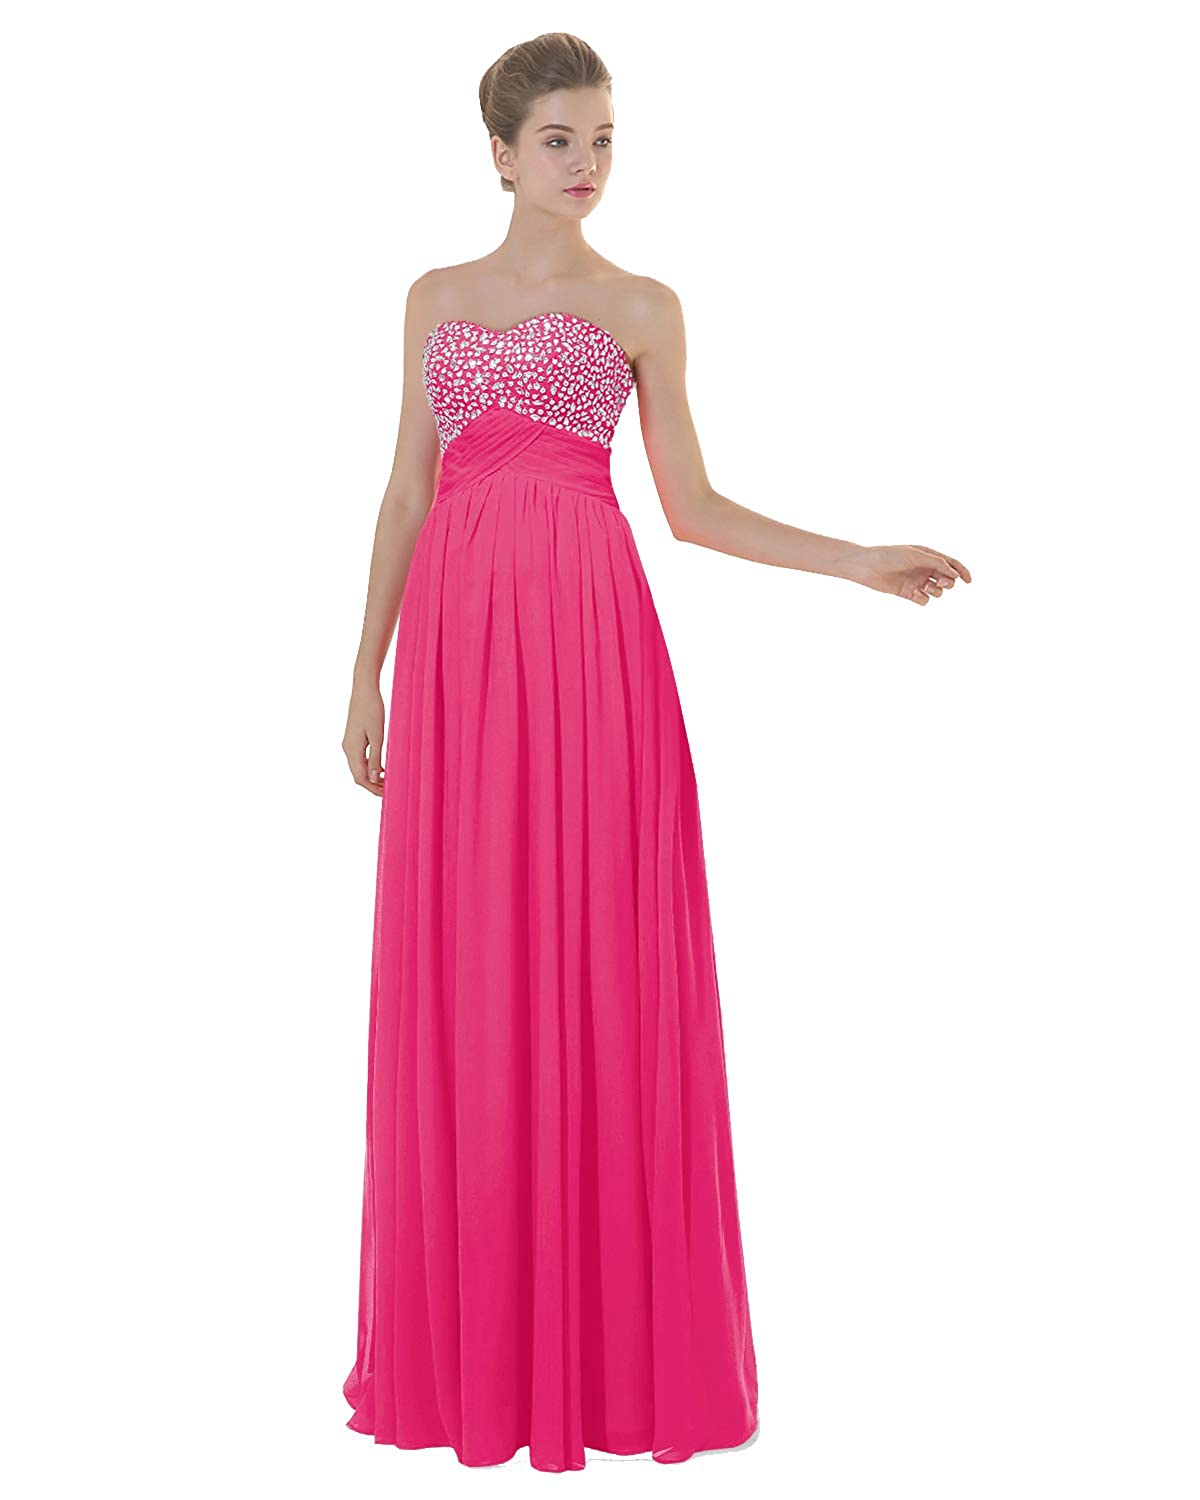 Hot Pink ANGELWARDROBE Empire Beaded Sweetheart Neck Prom Gowns Long Evening Dresses Party Skirts